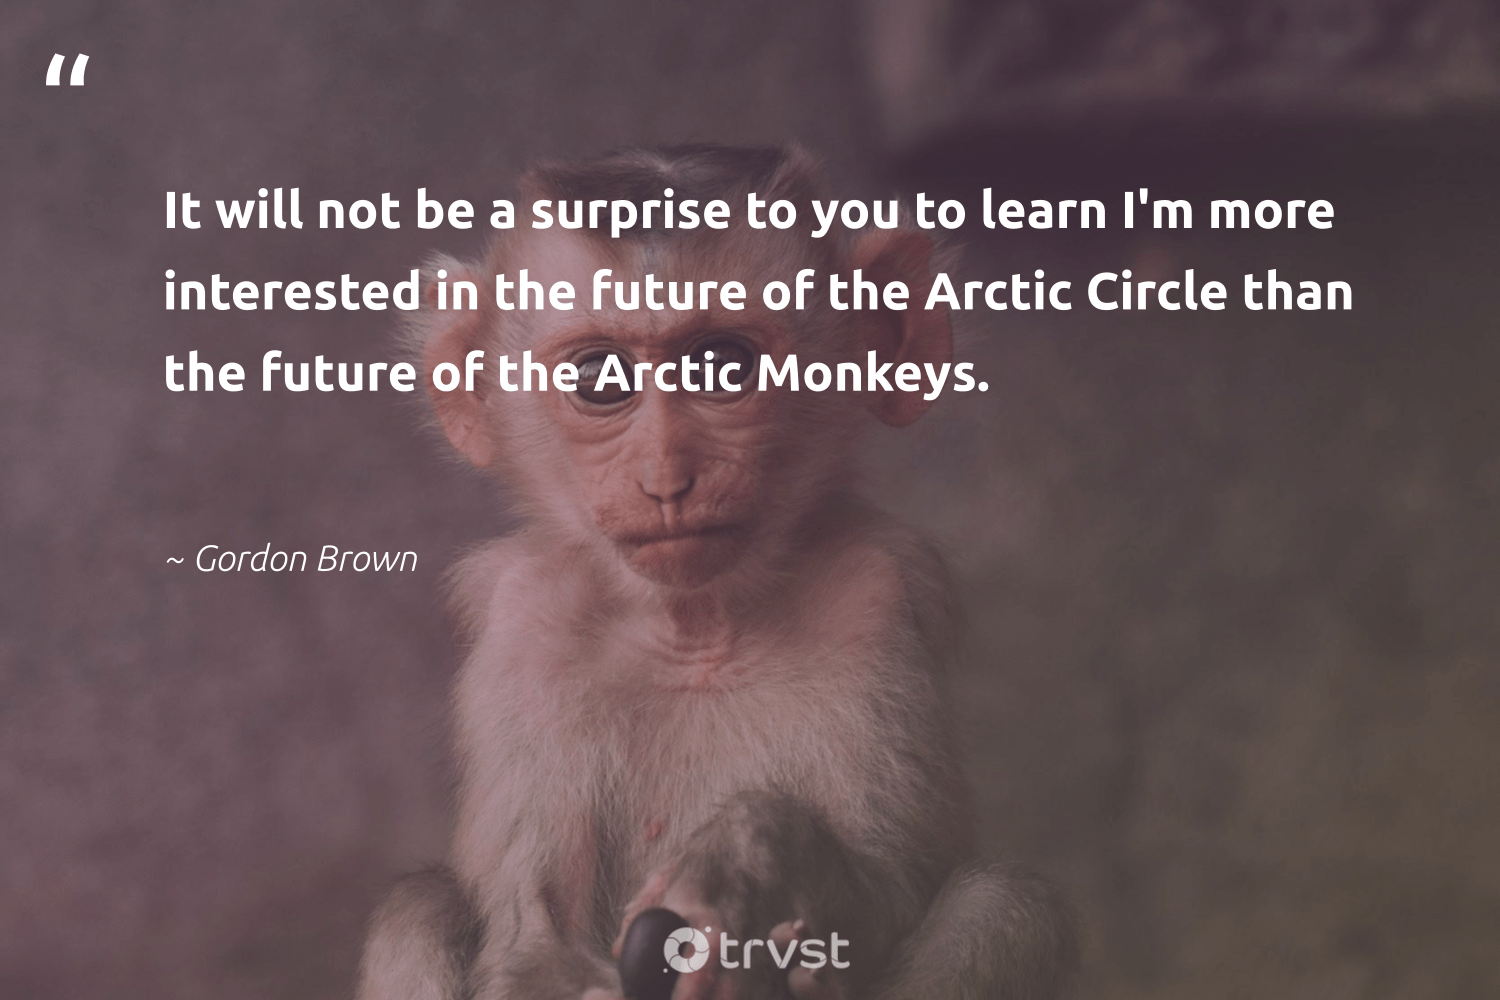 """It will not be a surprise to you to learn I'm more interested in the future of the Arctic Circle than the future of the Arctic Monkeys.""  - Gordon Brown #trvst #quotes #arctic #monkeys #majesticwildlife #bethechange #monkey #planetearthfirst #wildlifeprotection #thinkgreen #biodiversity #dogood"